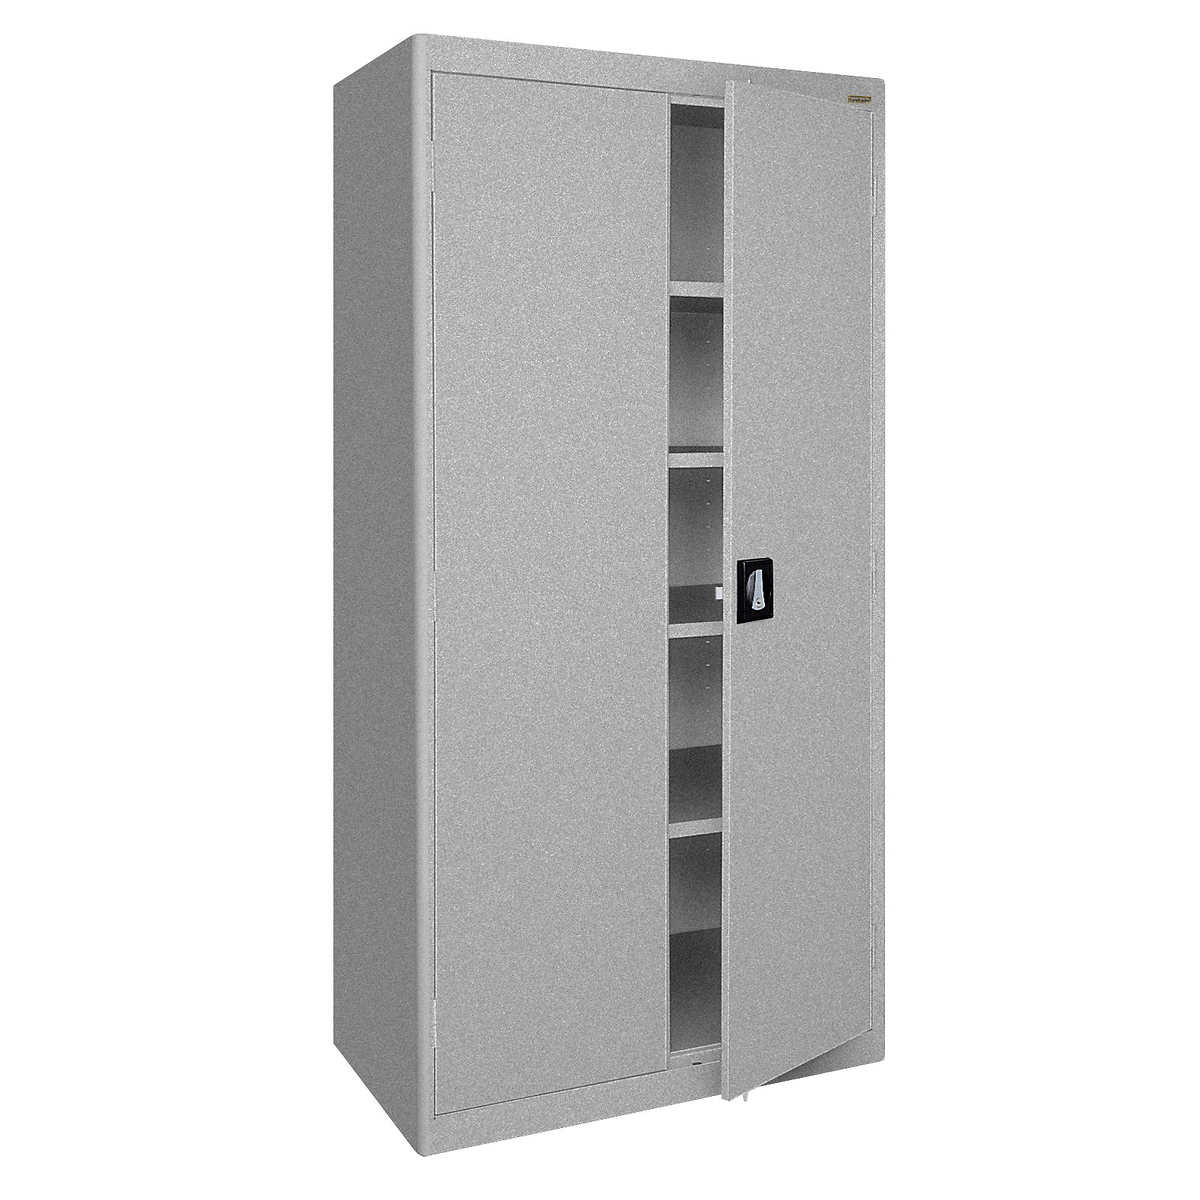 18 Storage Cabinet Storage Cabinets Shelving Units Costco